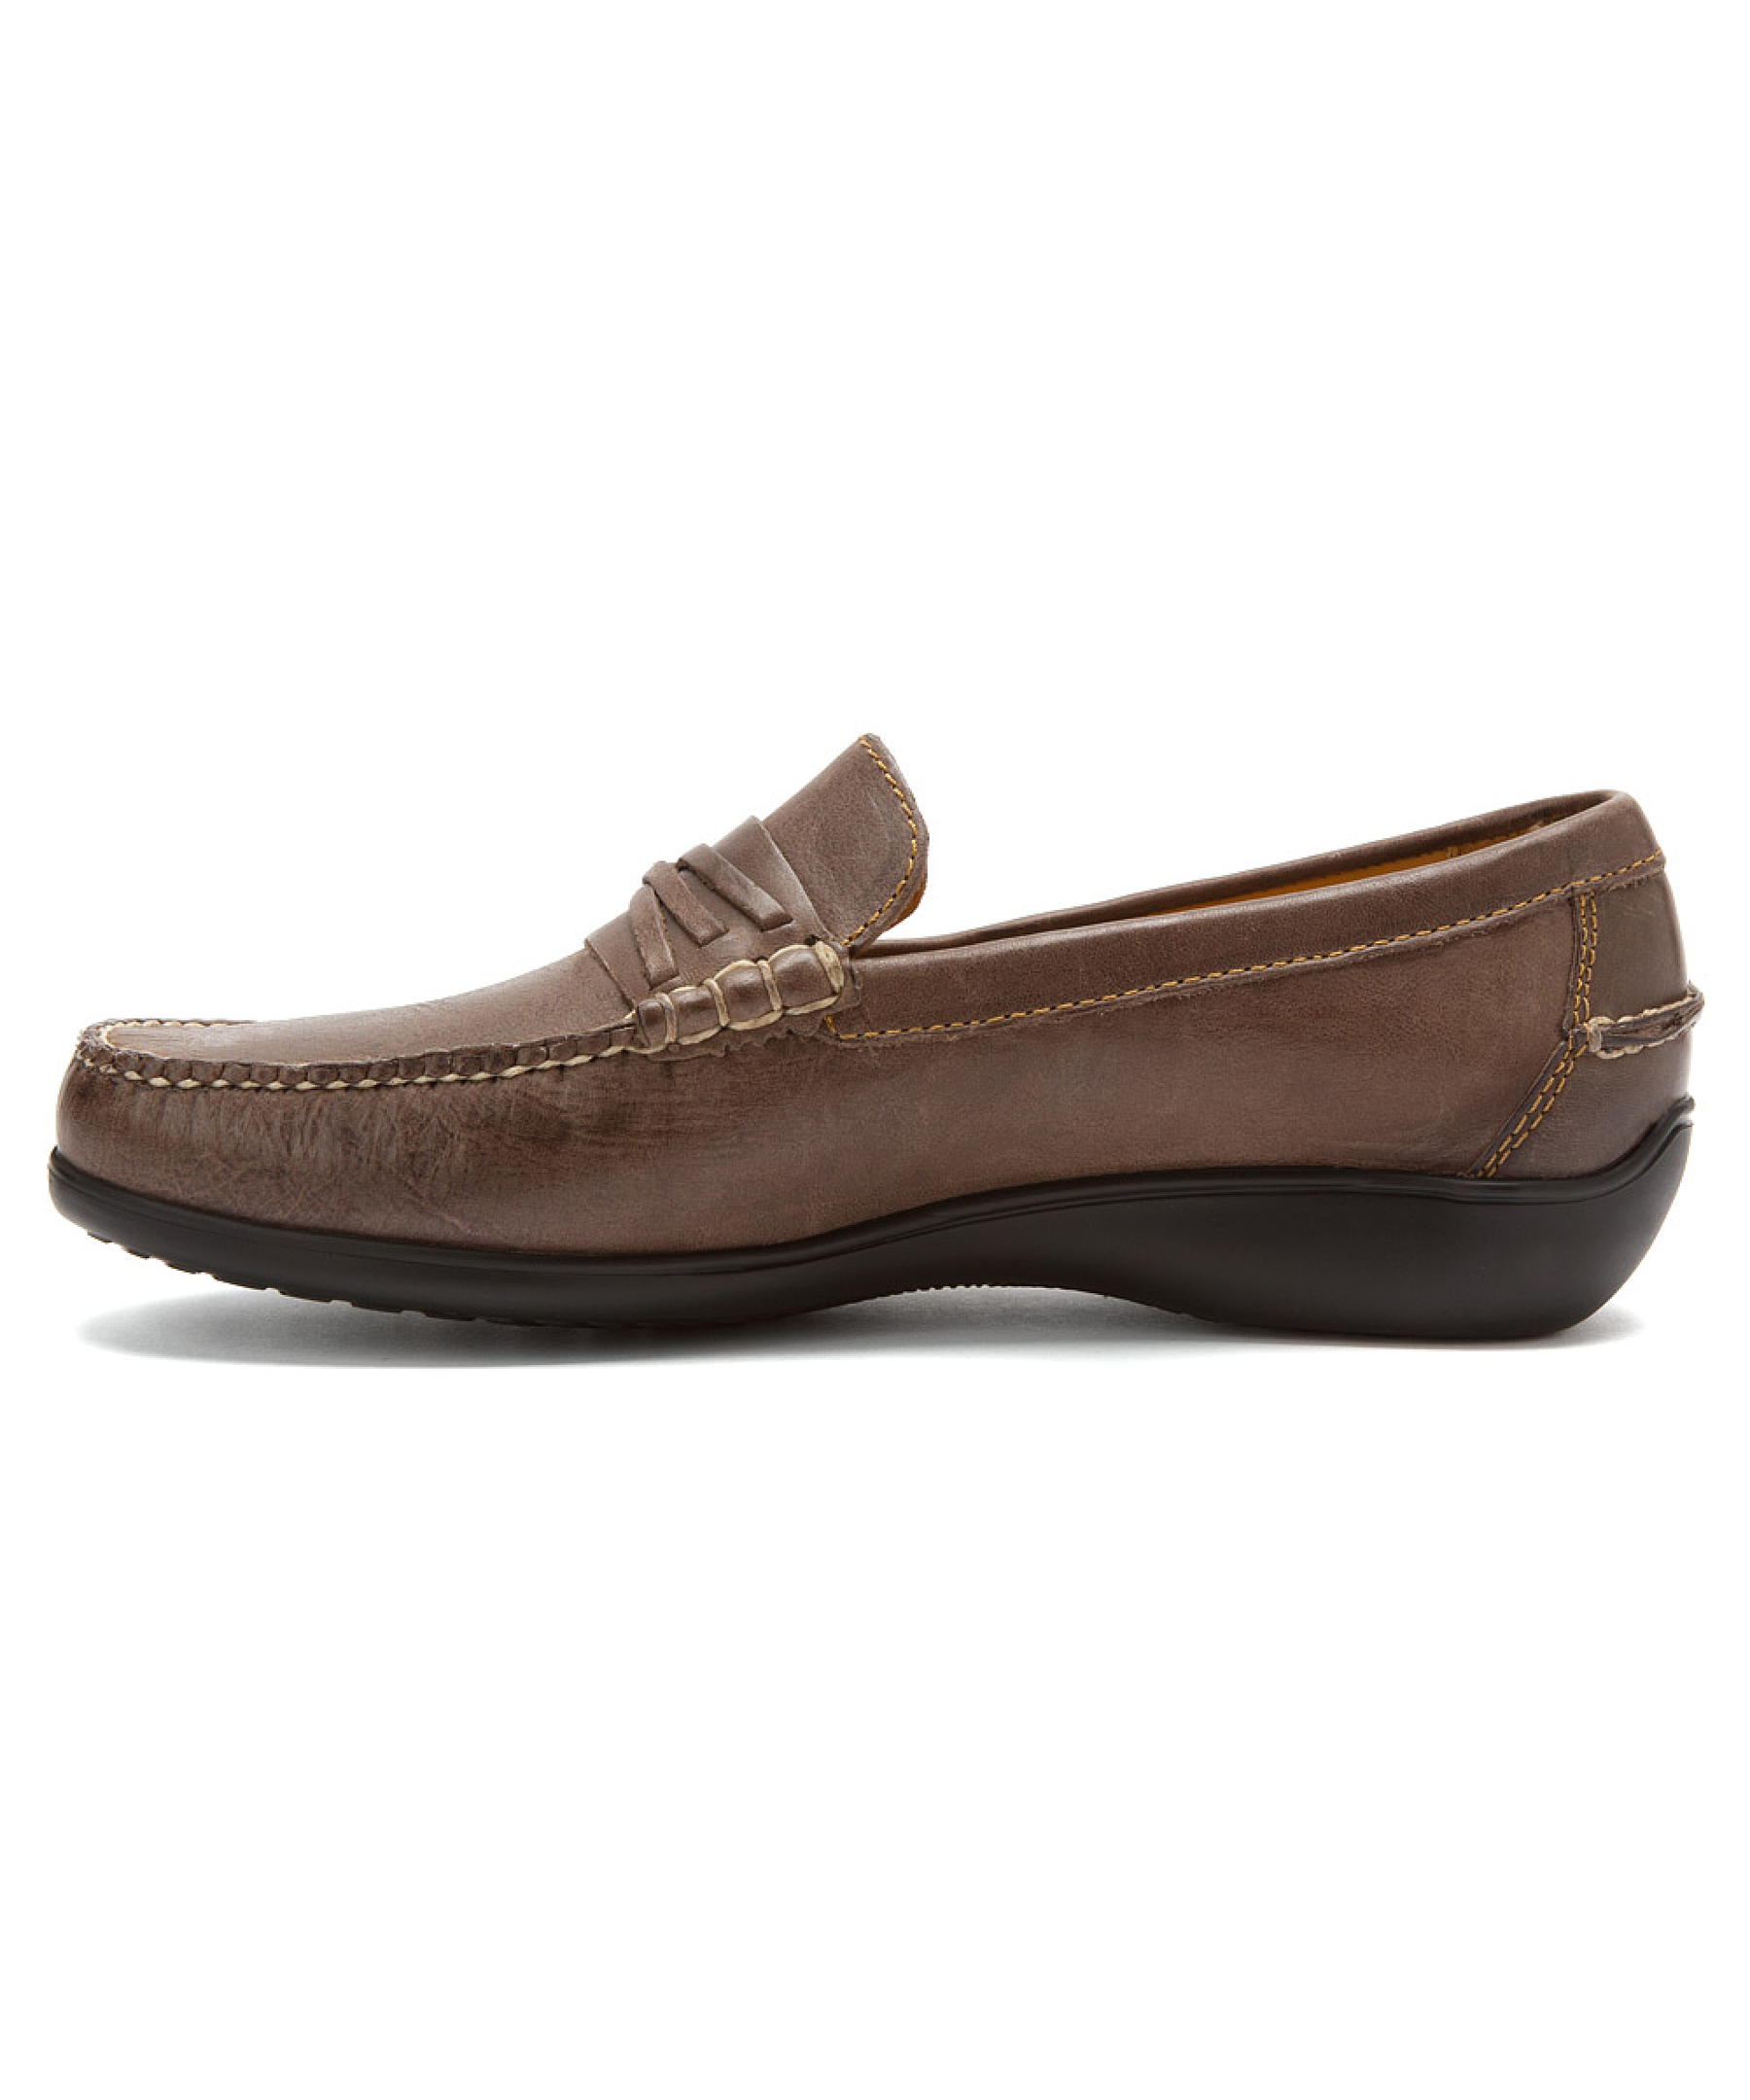 Neil M Men's Truman Loafers Shoes In Brown For Men